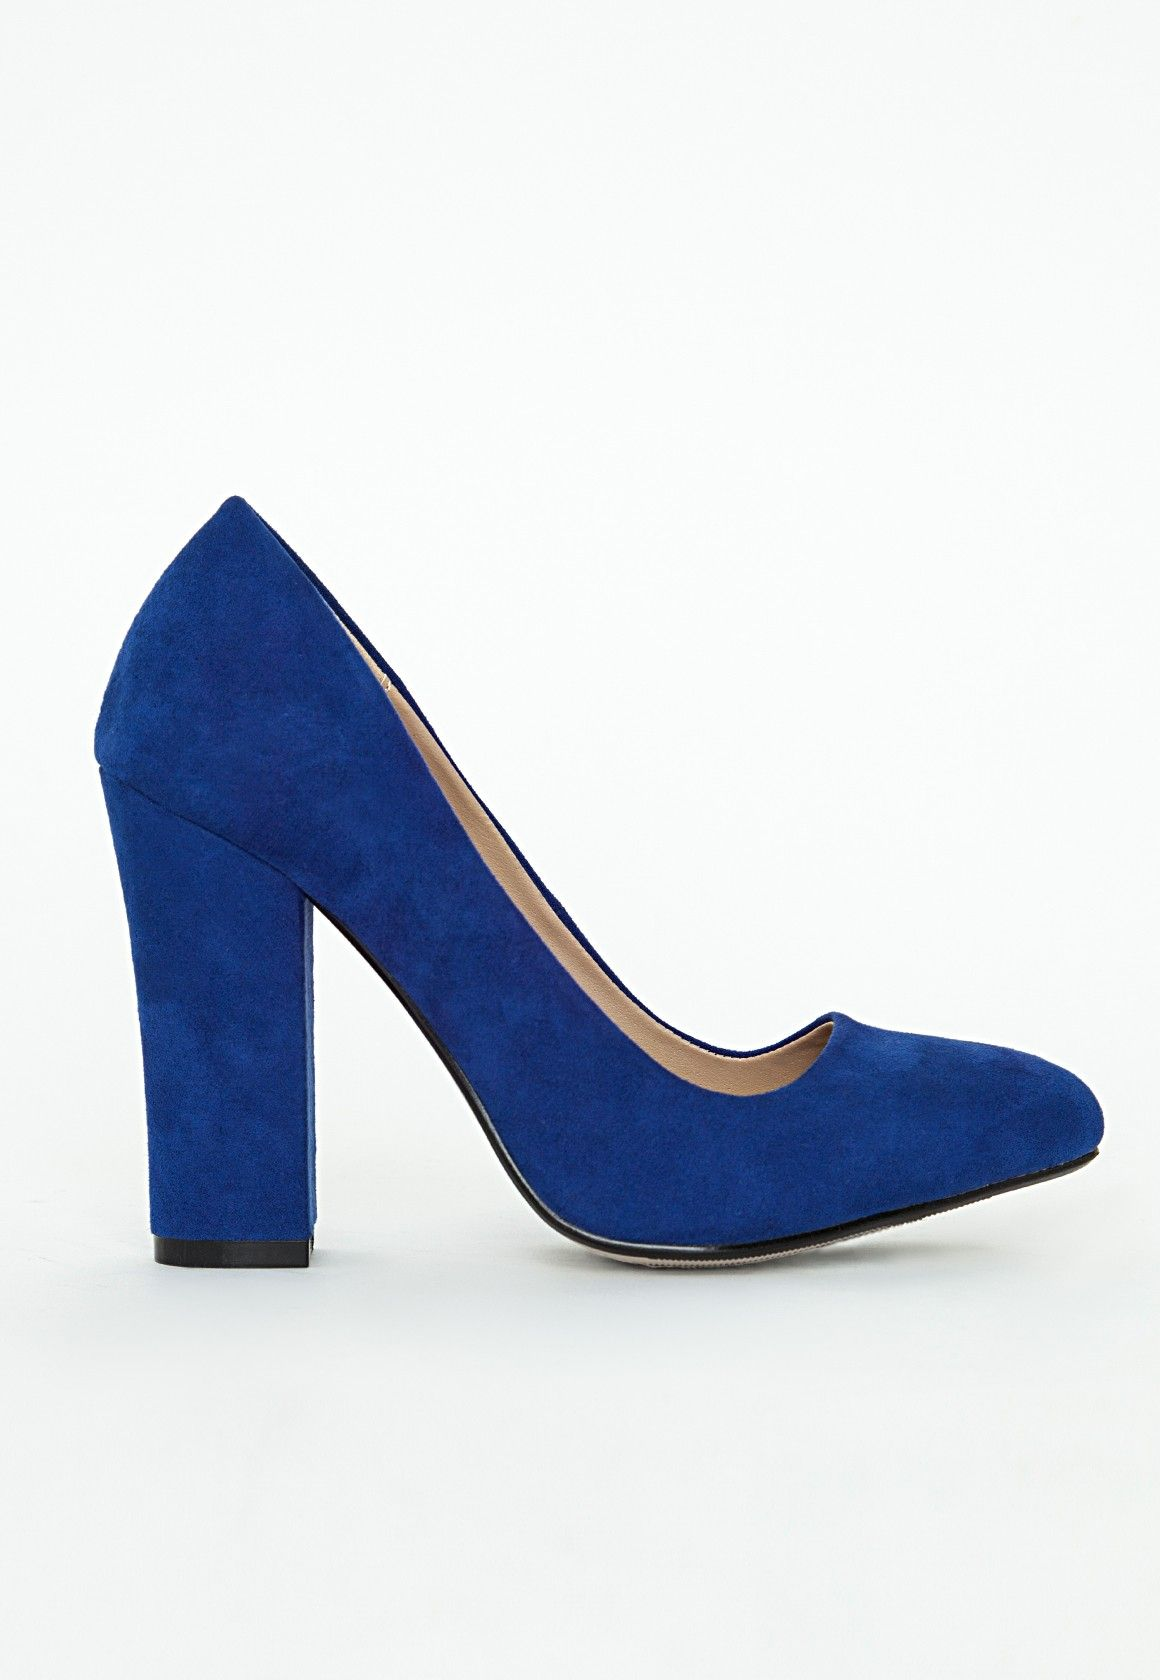 missguided block heel cobalt blue | Desirable Footwear | Pinterest ...